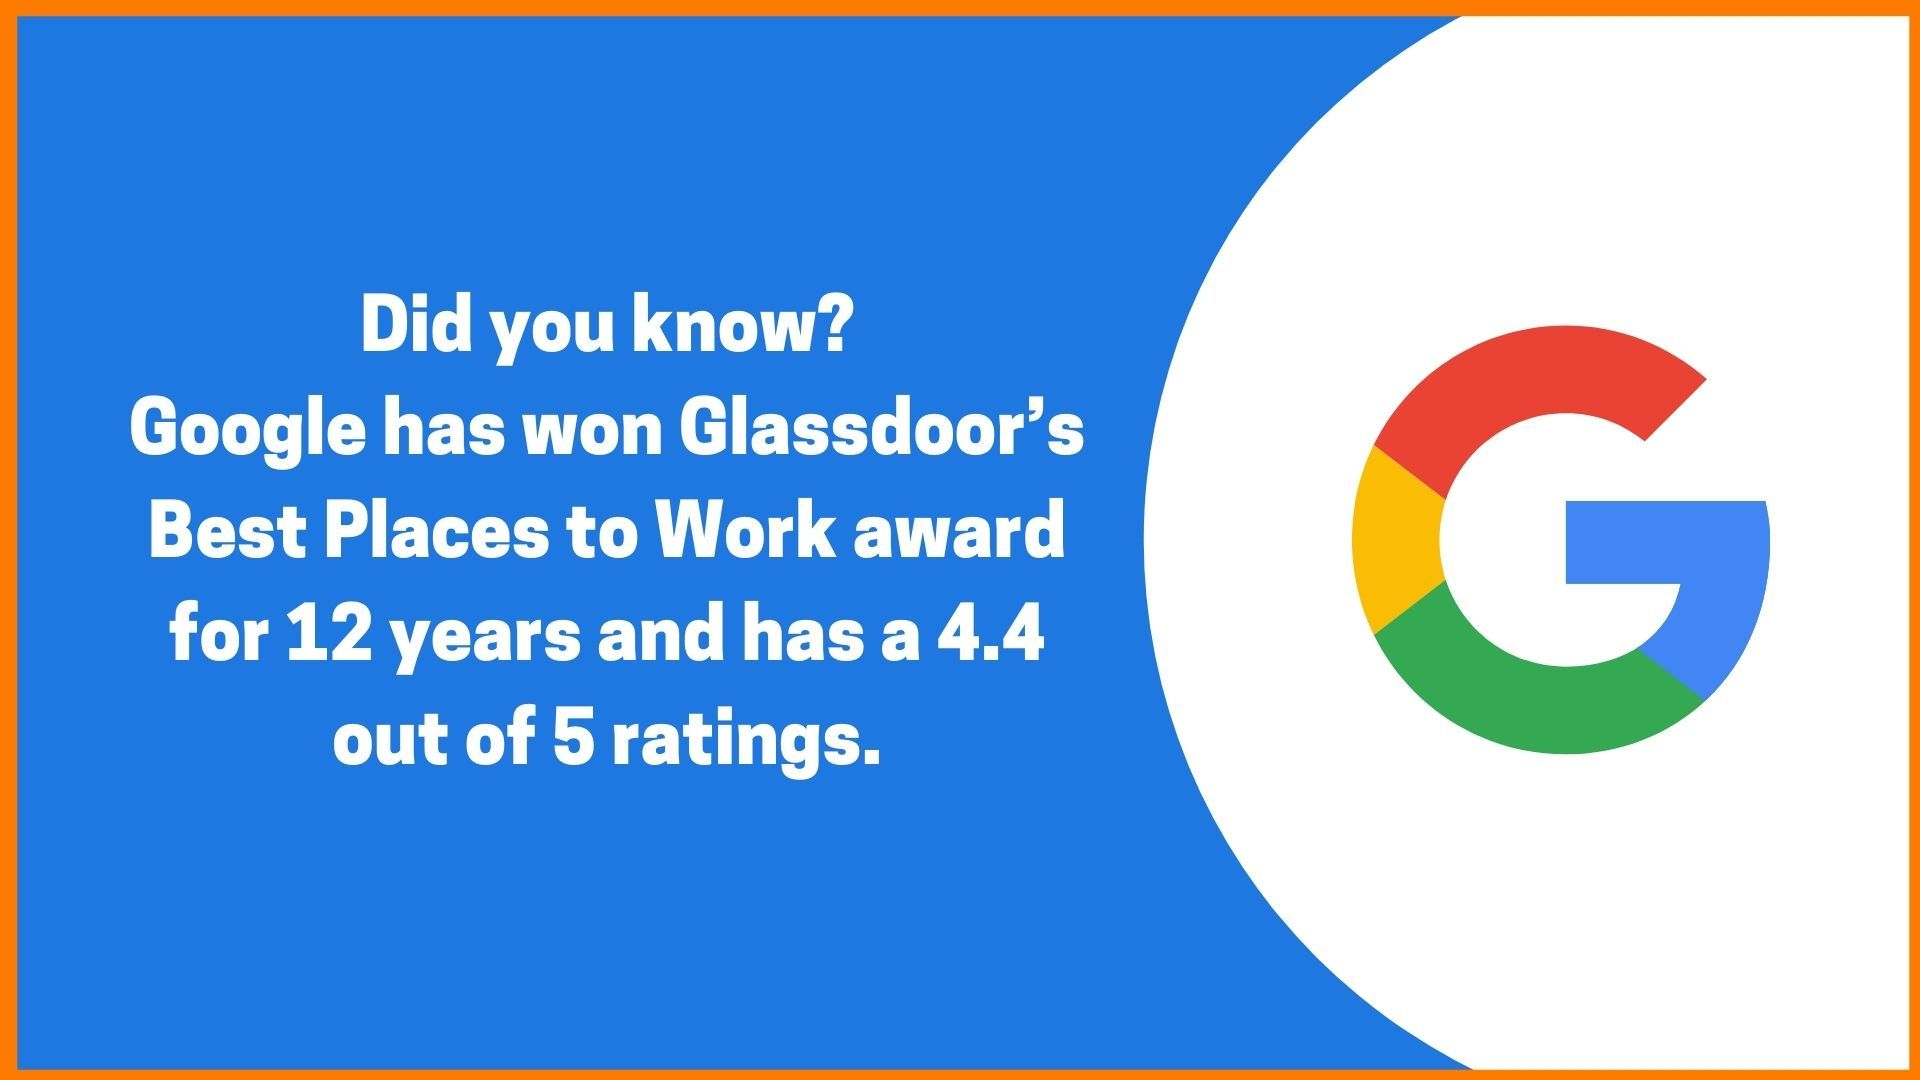 Google won Glassdoor Award for 12 years